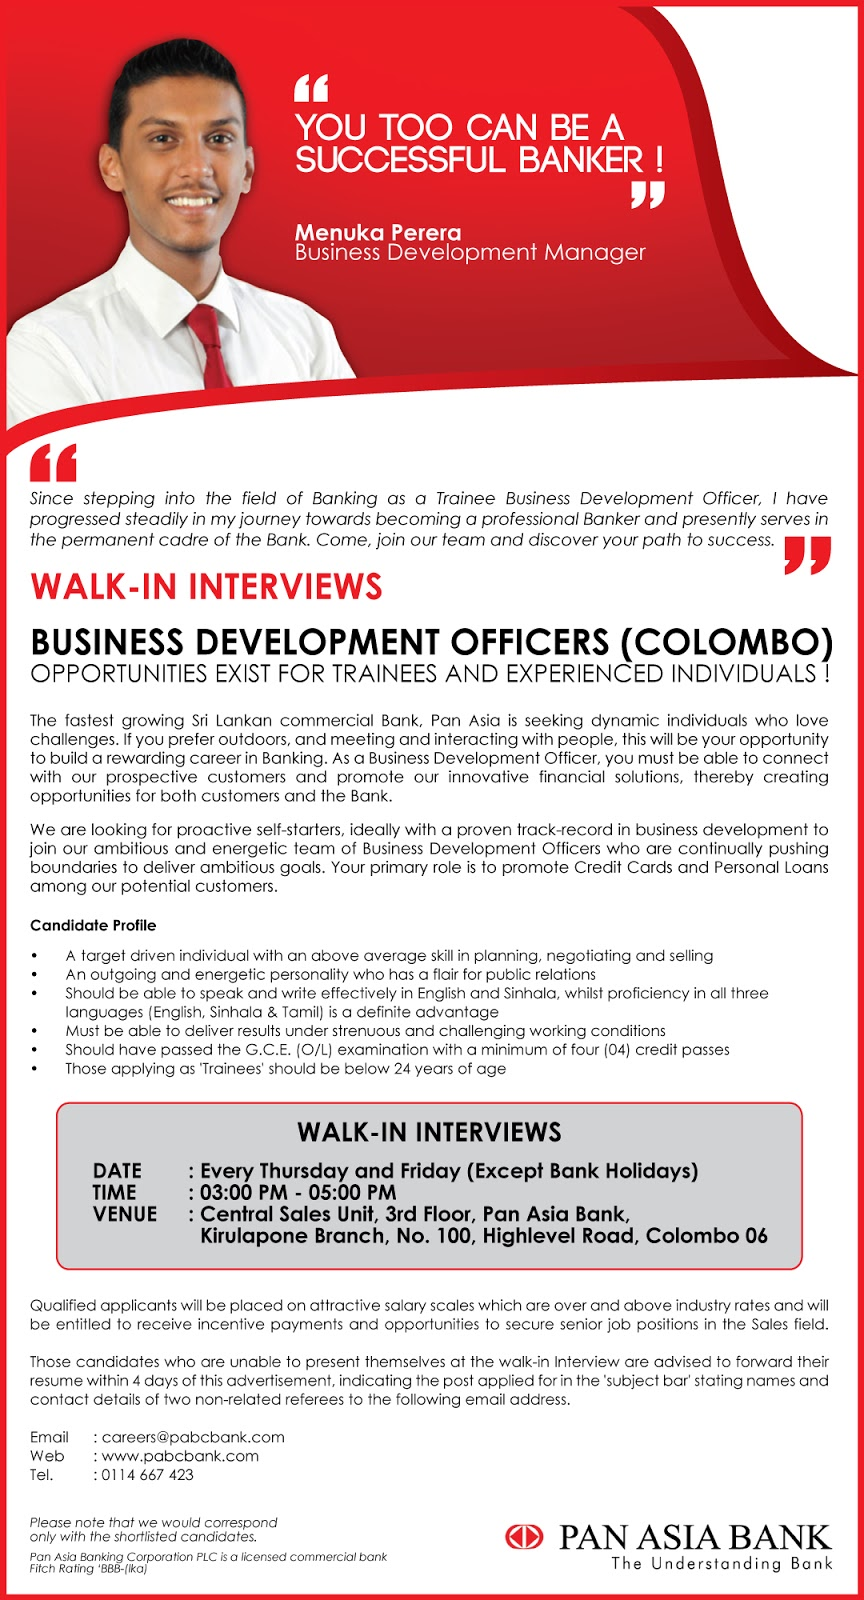 Business Development Officers (Colombo)